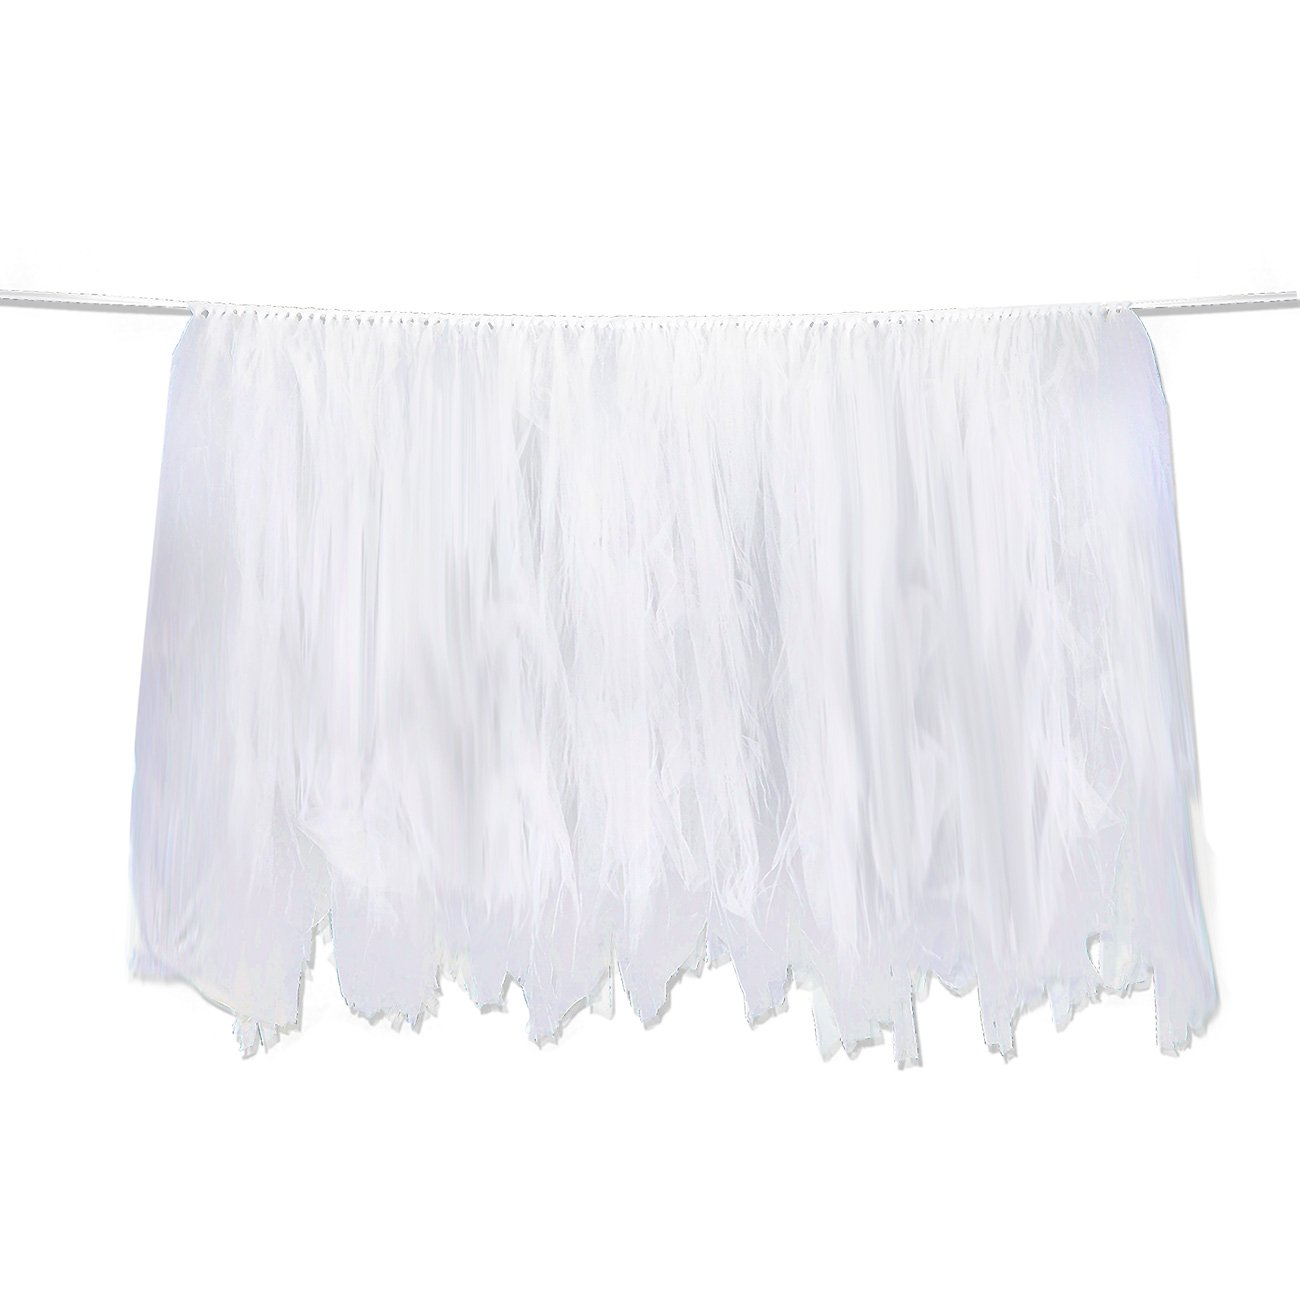 Tutu Table Skirt - Fluffy Tulle Tablecloth, Party Tableware, Table Decorations for Birthday, Wedding, Baby Shower, and Banquet, White, 47 x 31 Inches